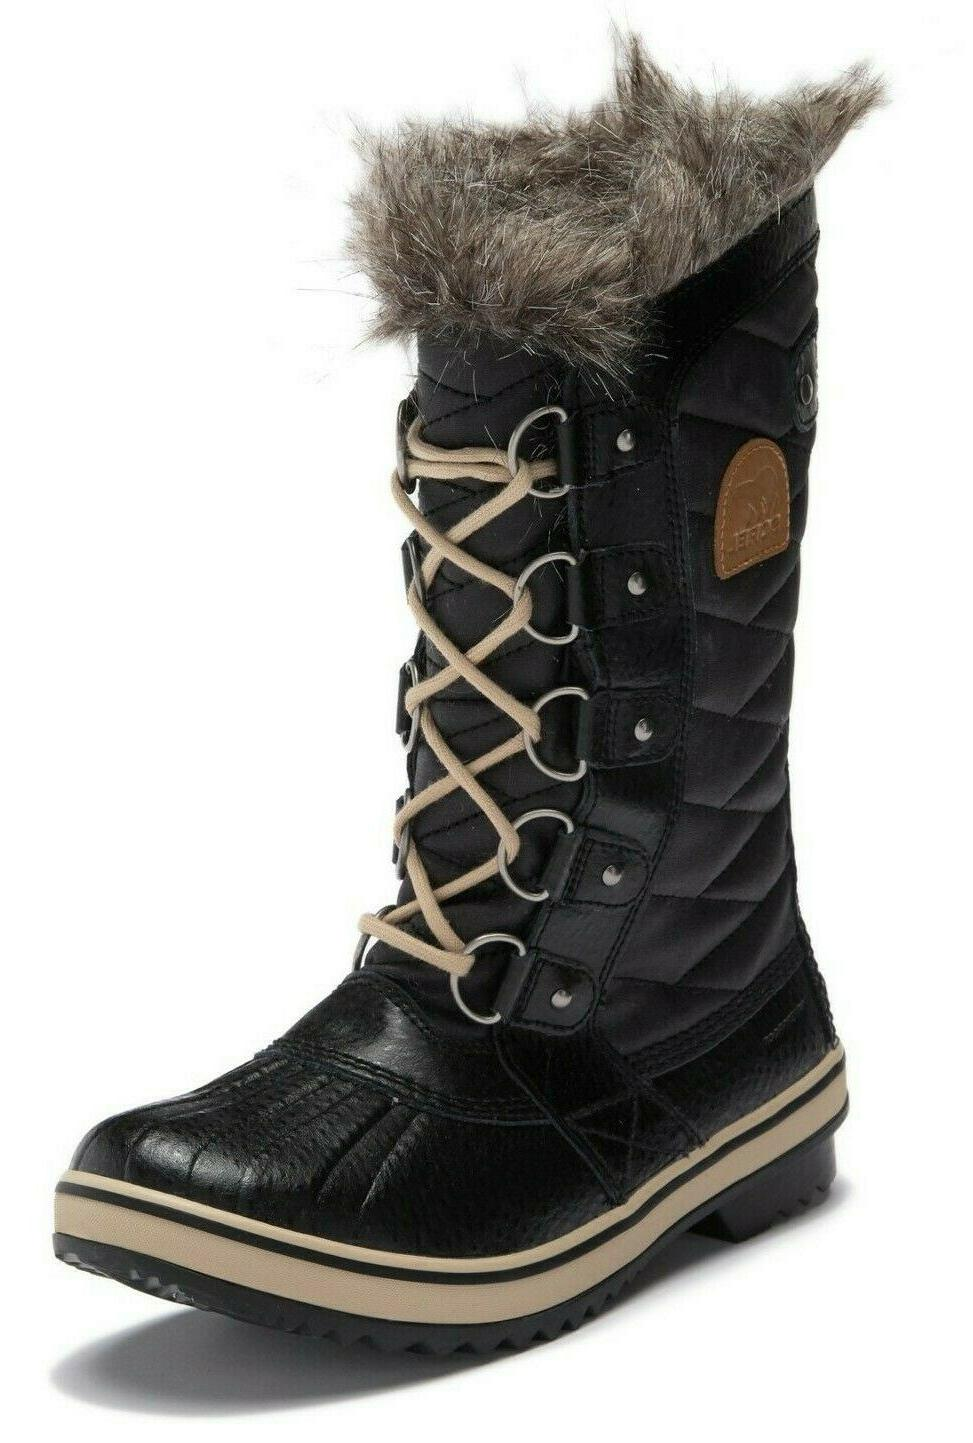 Sorel Tofino II Women's Waterproof Insulated Winter Snow Boo